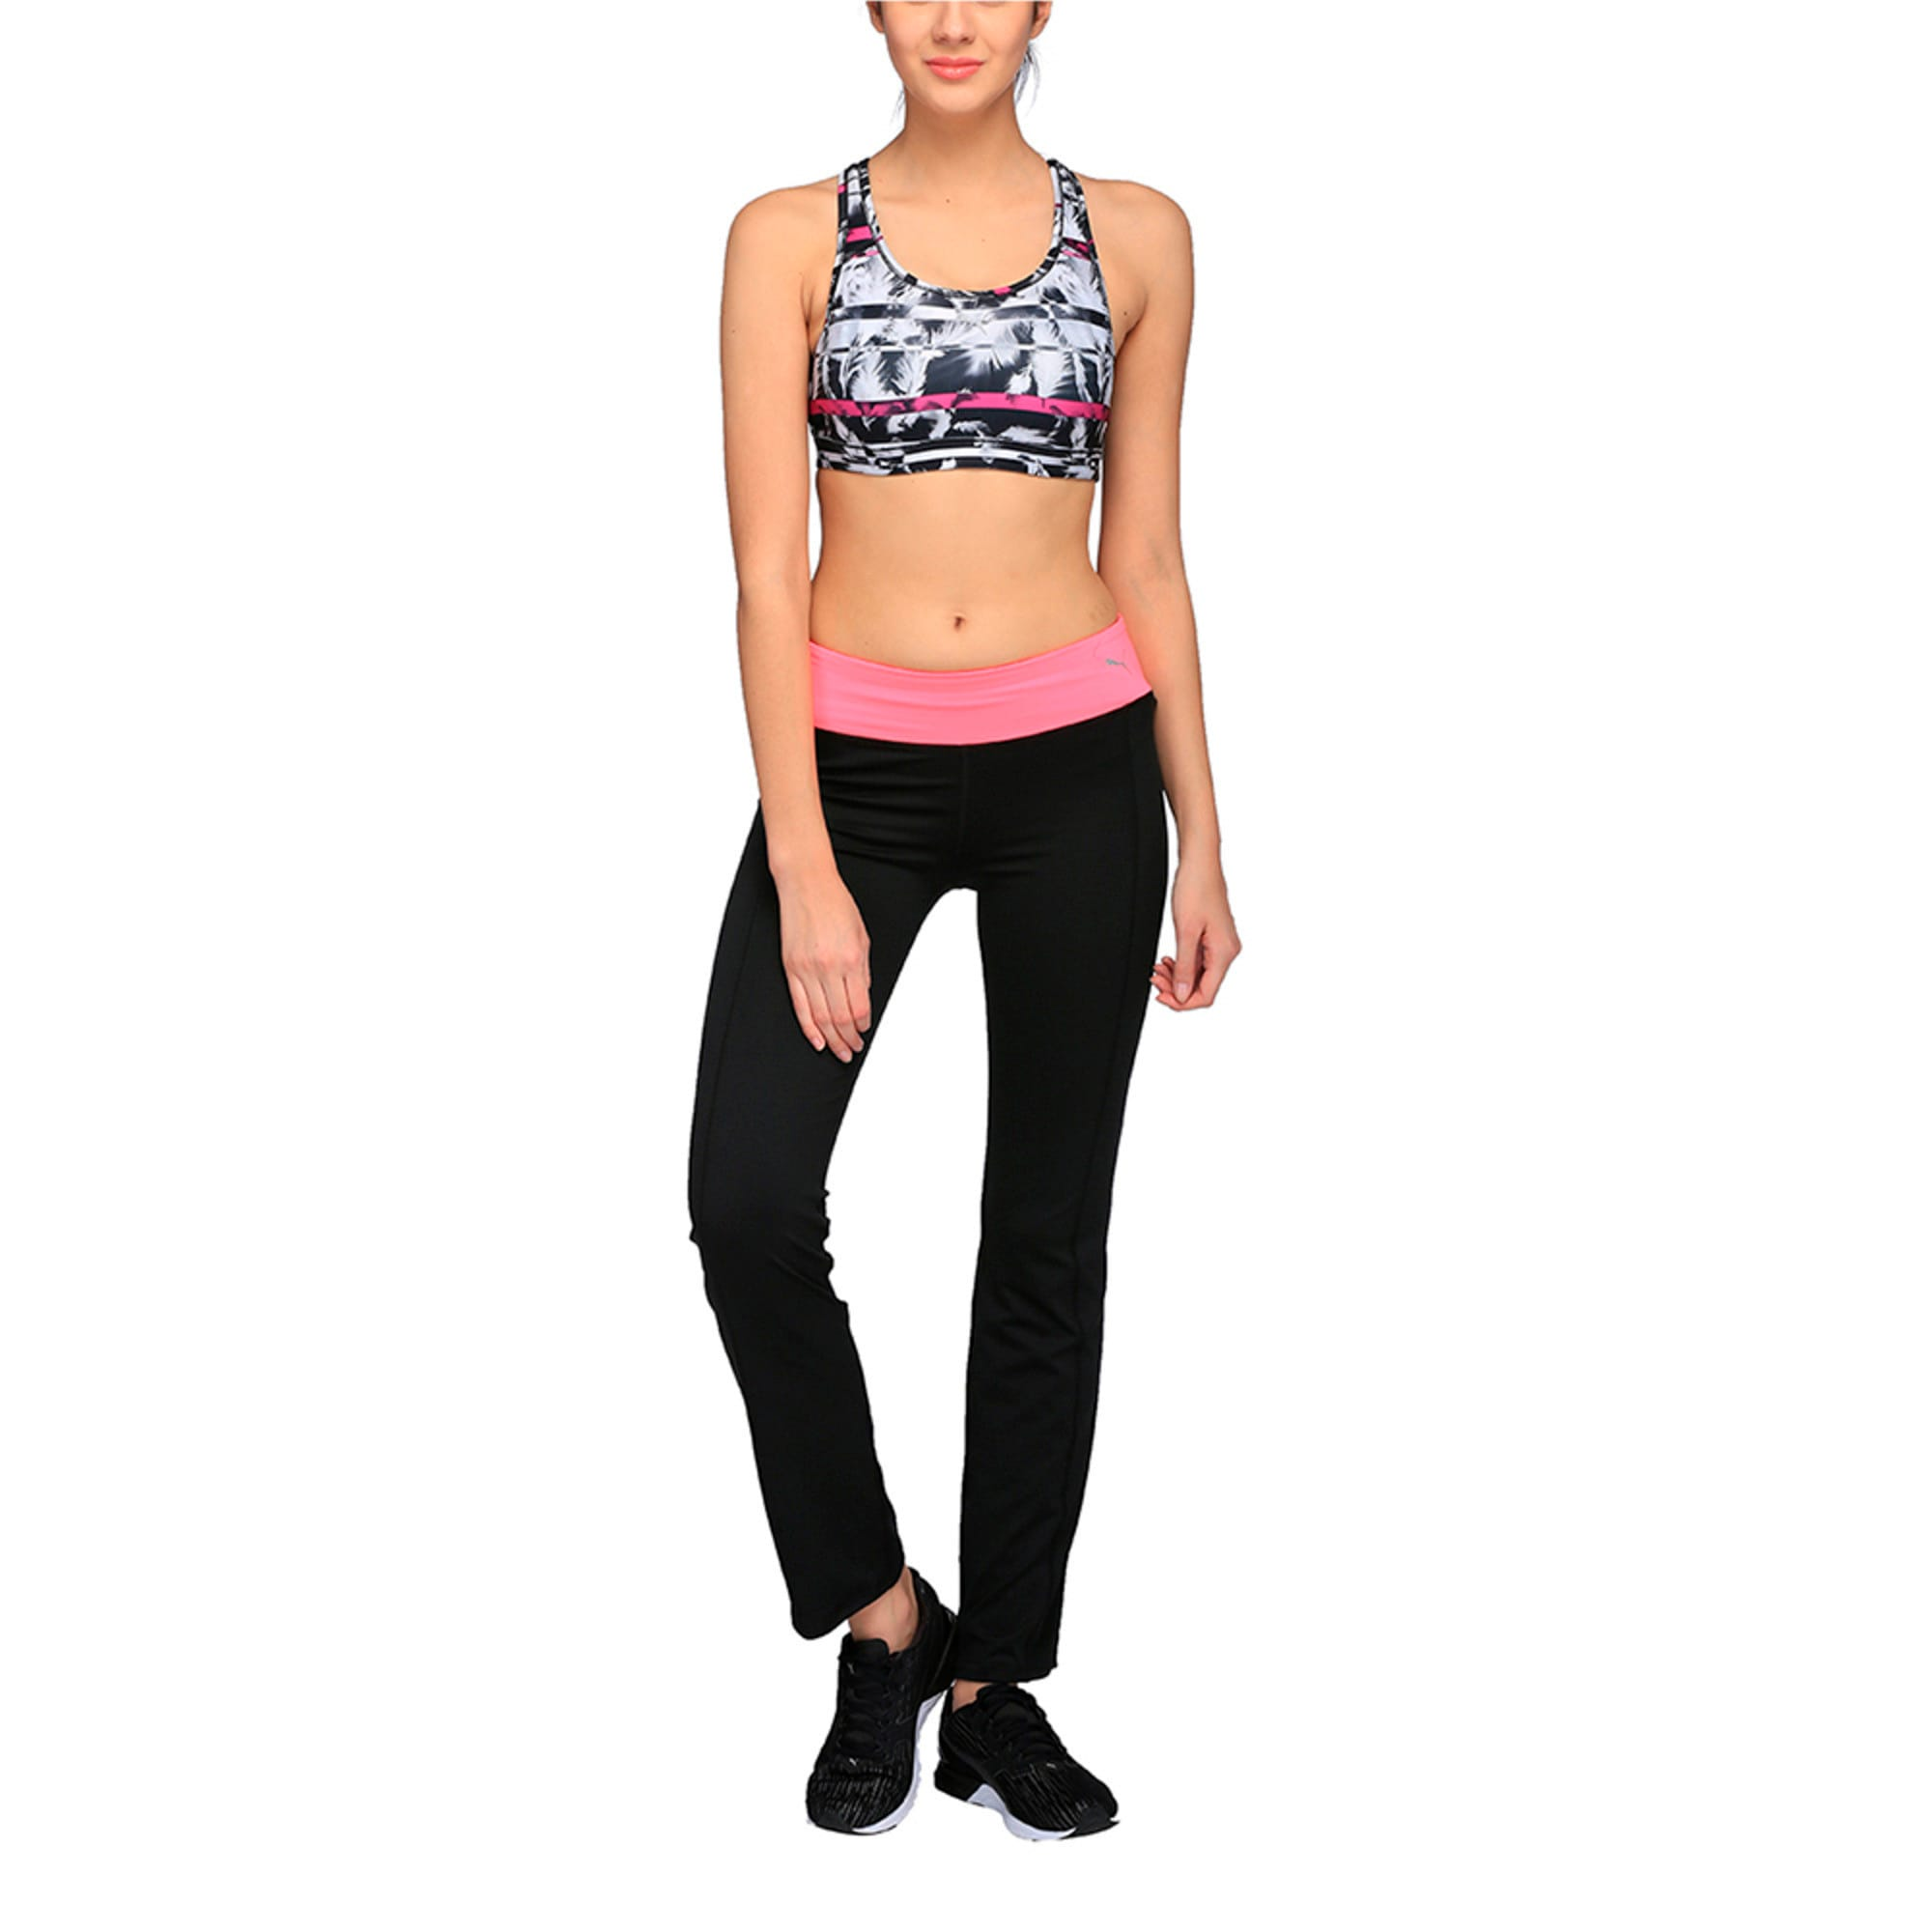 Thumbnail 2 of Training Women's PWRSHAPE Forever Graphic Padded Crop Top, black-magenta-feather prt, medium-IND